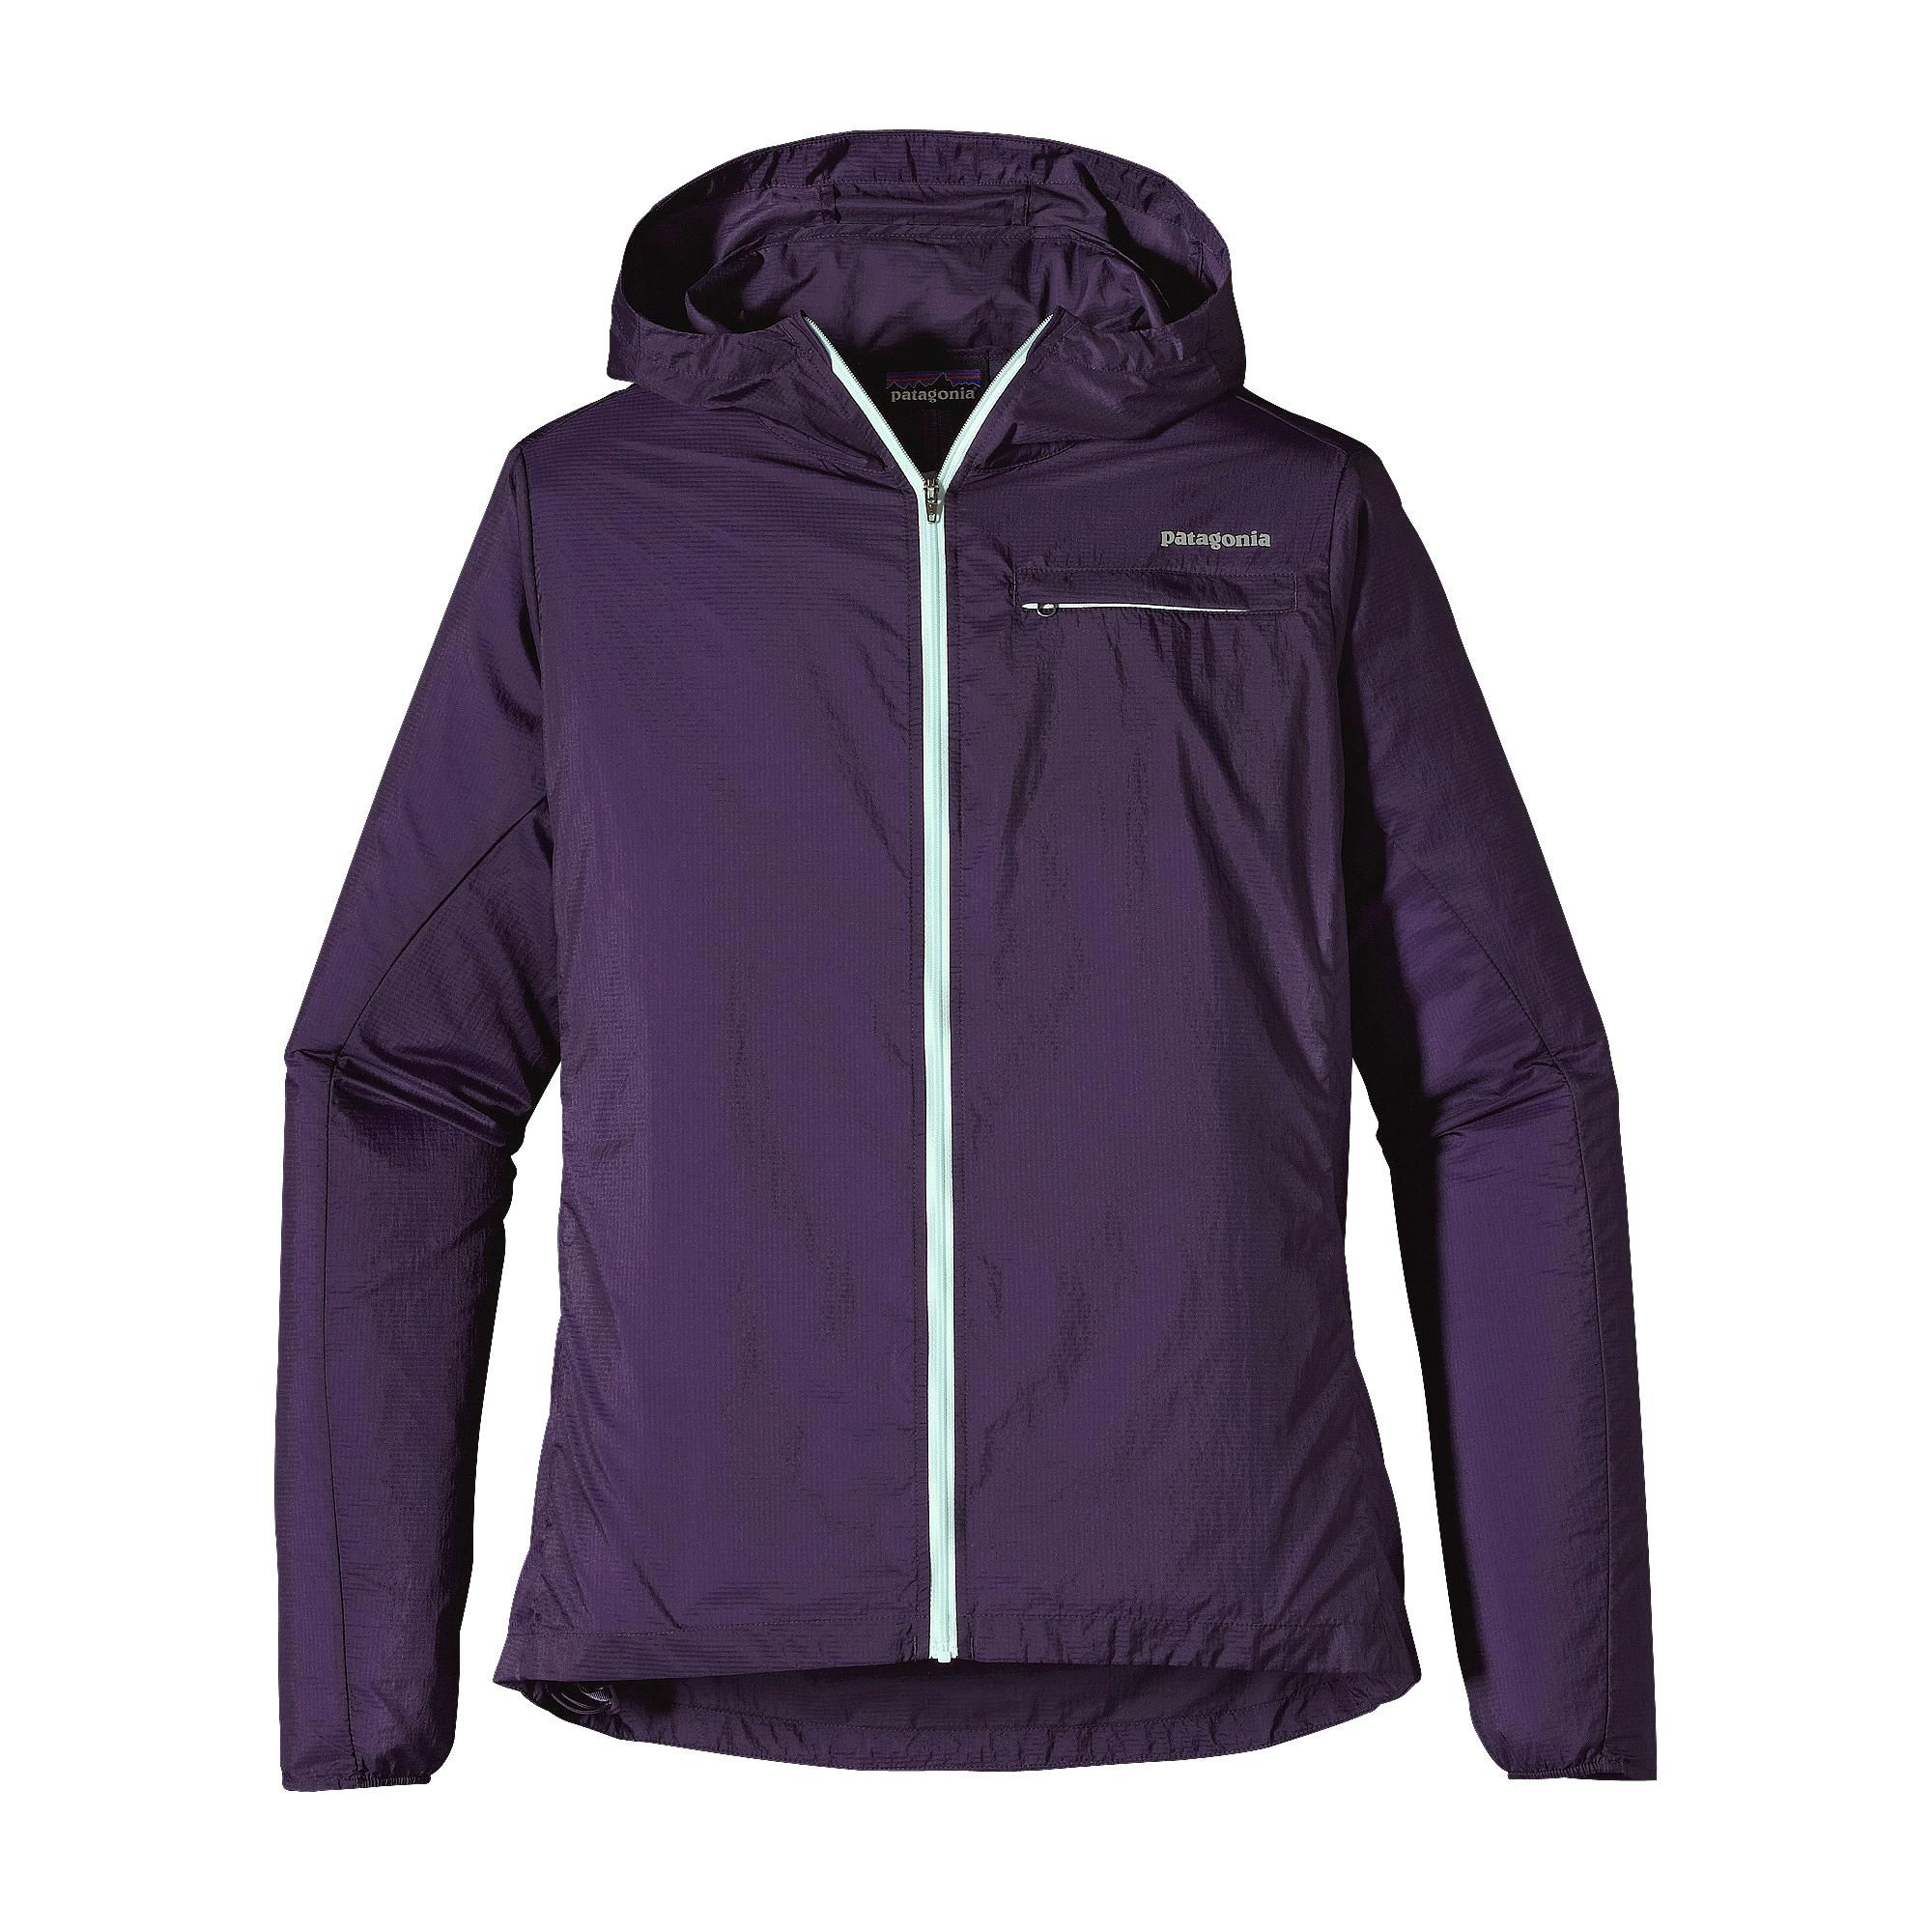 Patagonia Women's Houdini® Jacket Highly breathable and